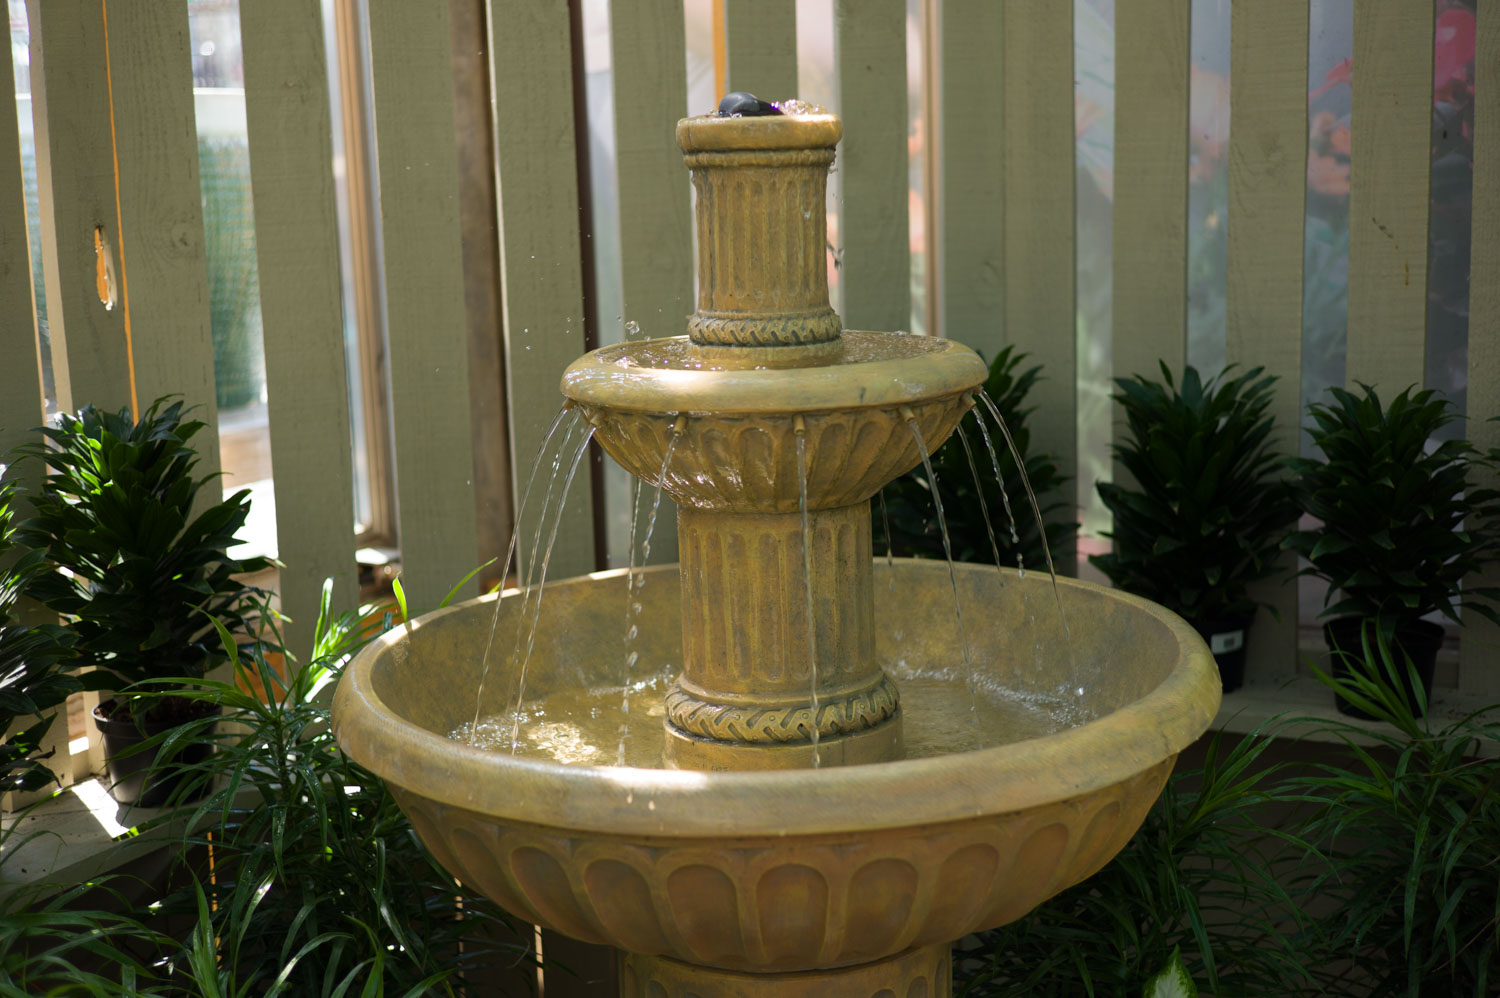 Outdoor Fountains - Landscape Fountains - Water Features - Patuxent Nursery, Bowie, MD